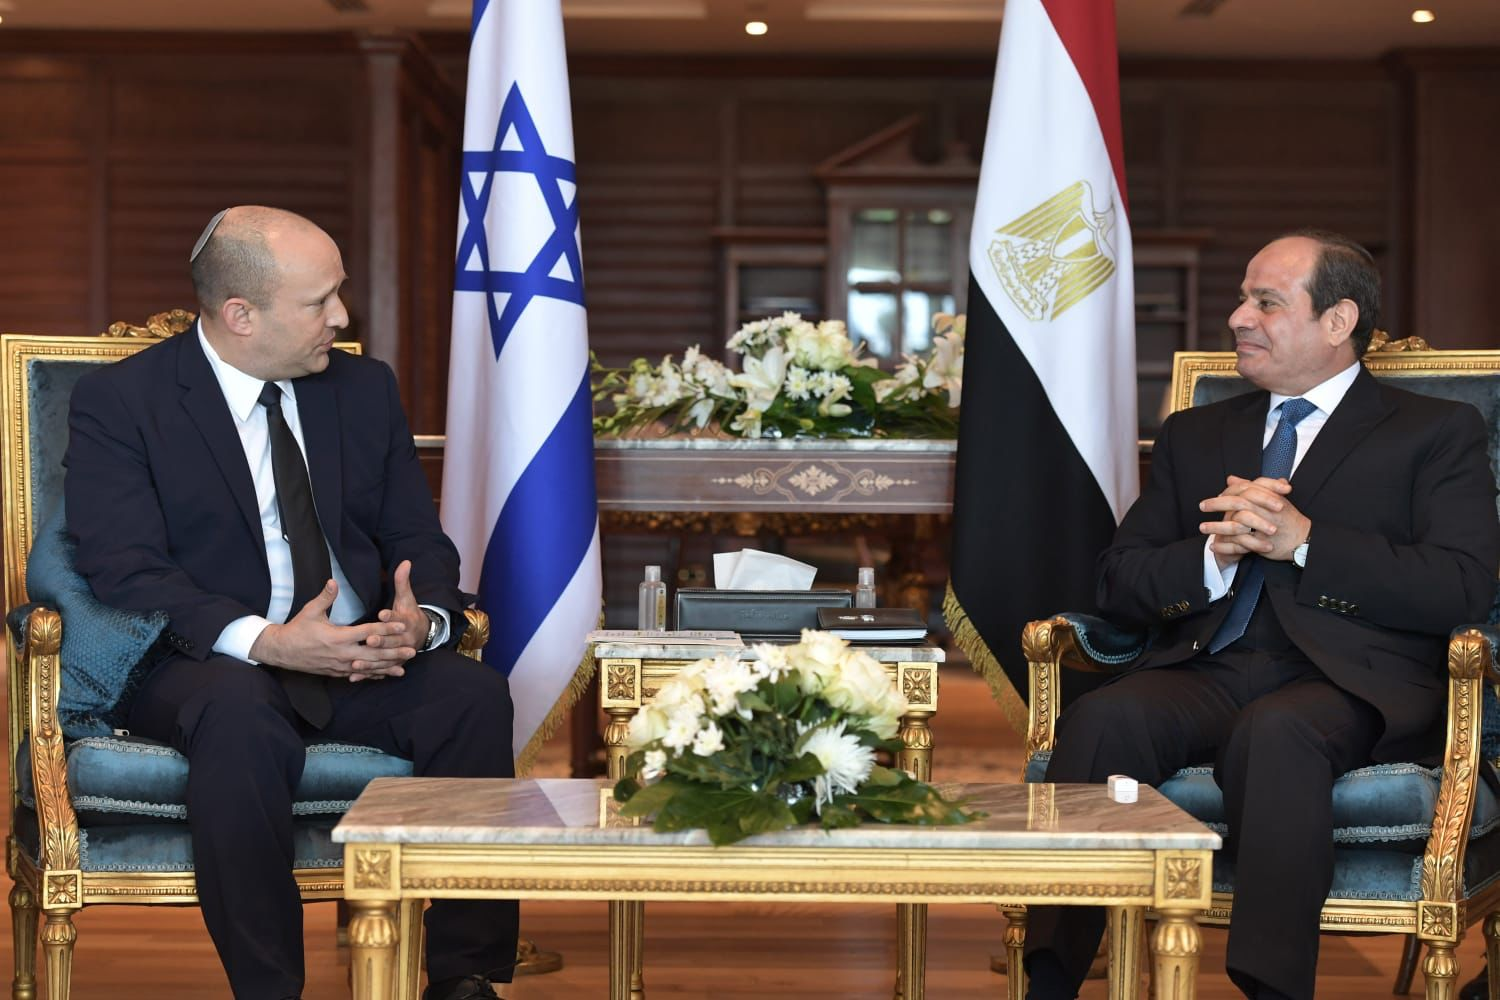 The Bennett-Sisi Meeting: A Rare Chance to Publicly Boost Relations